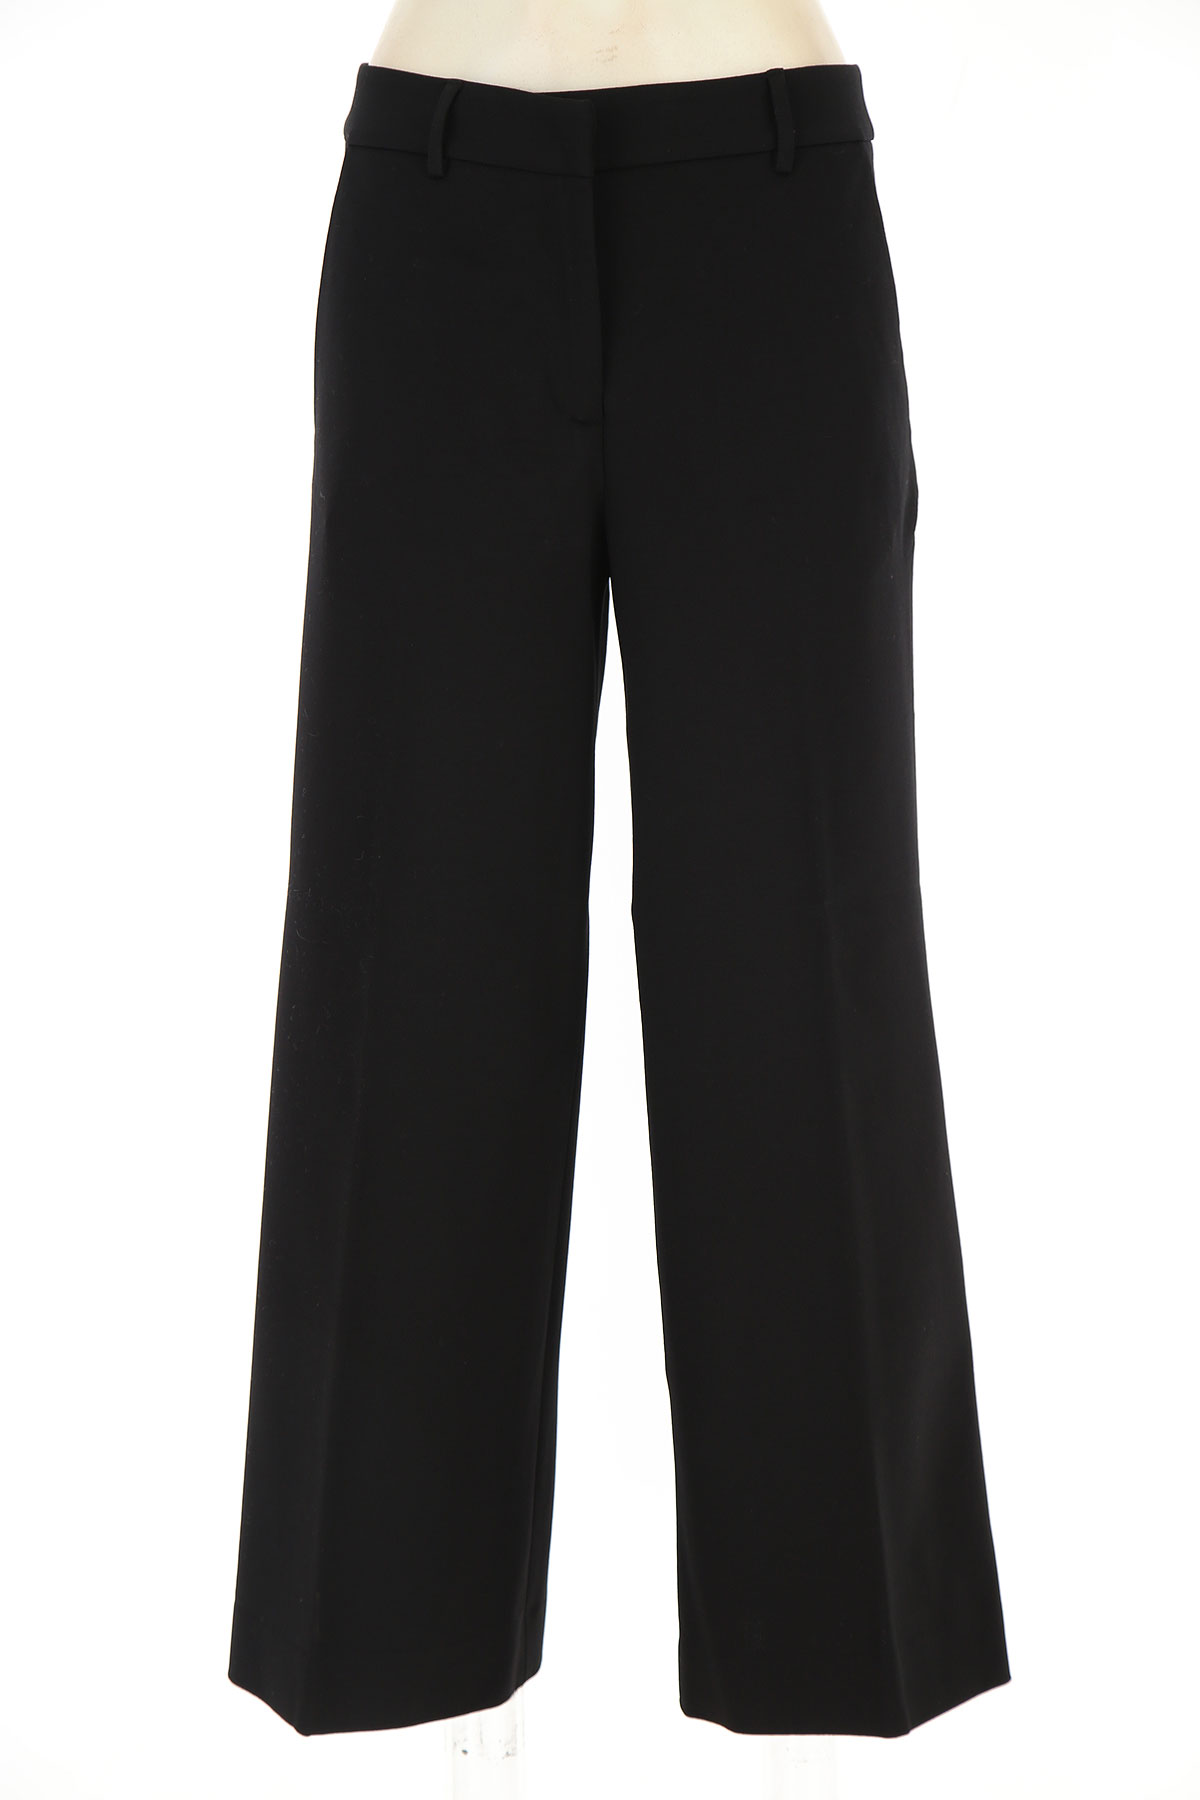 Liviana Conti Pants for Women On Sale, Black, viscosa, 2019, 6 8